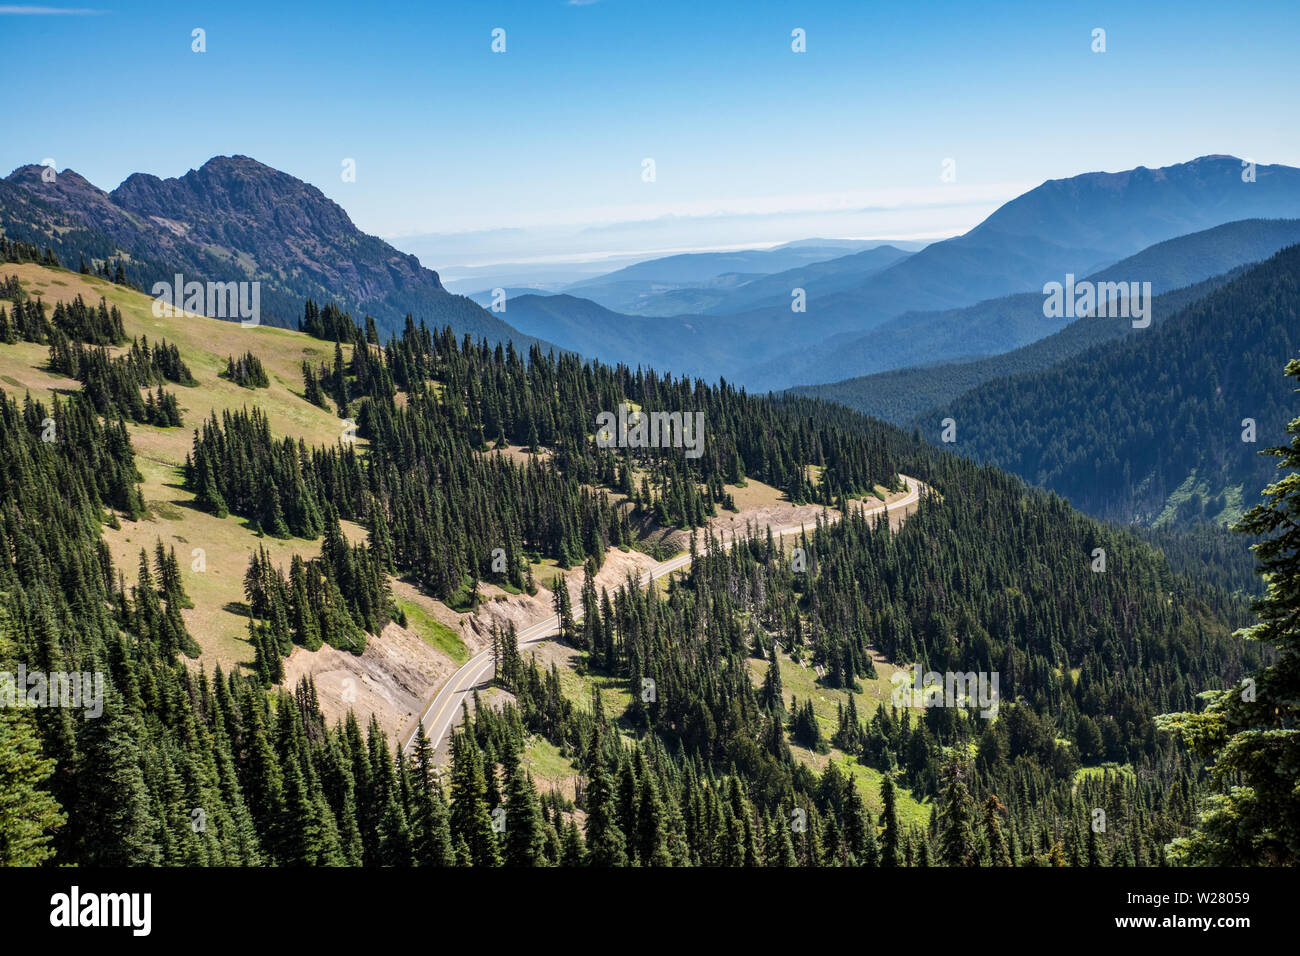 Hurricane Ridge, Olympic National Park, Washington, USA.  View of mountain range and highway from a hiking trail. Stock Photo